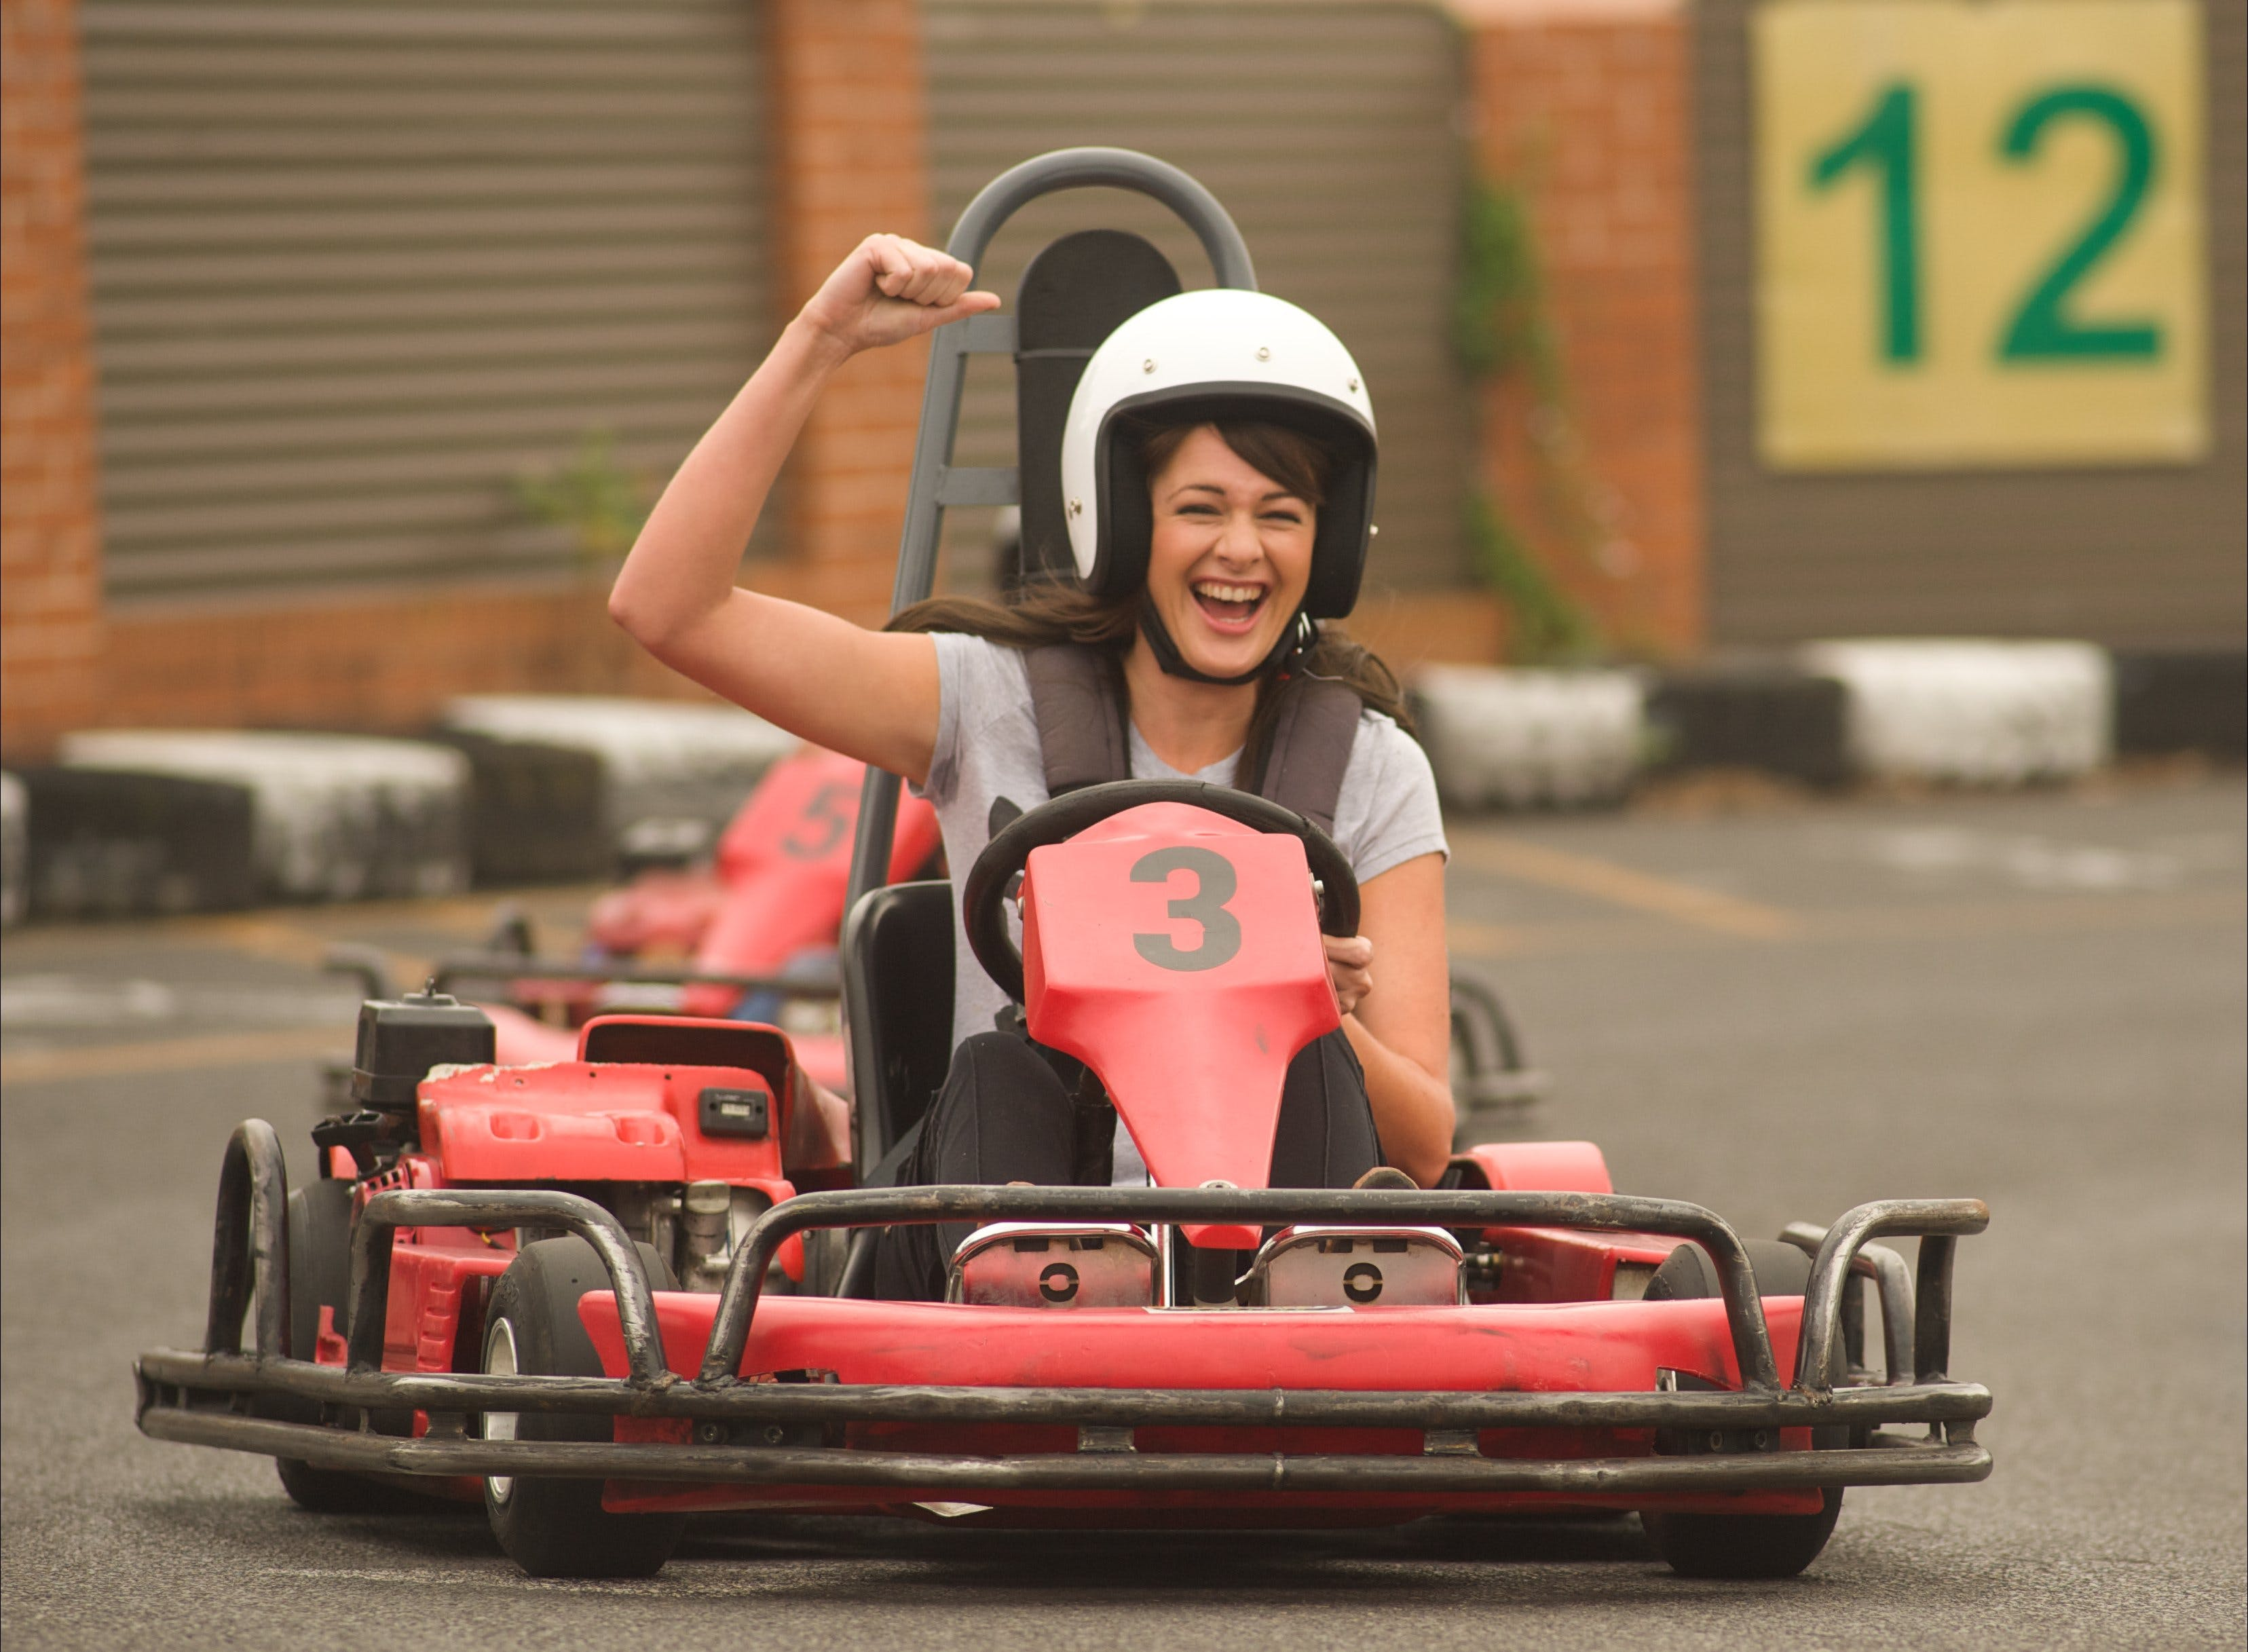 Fastlane Karting - New South Wales Tourism